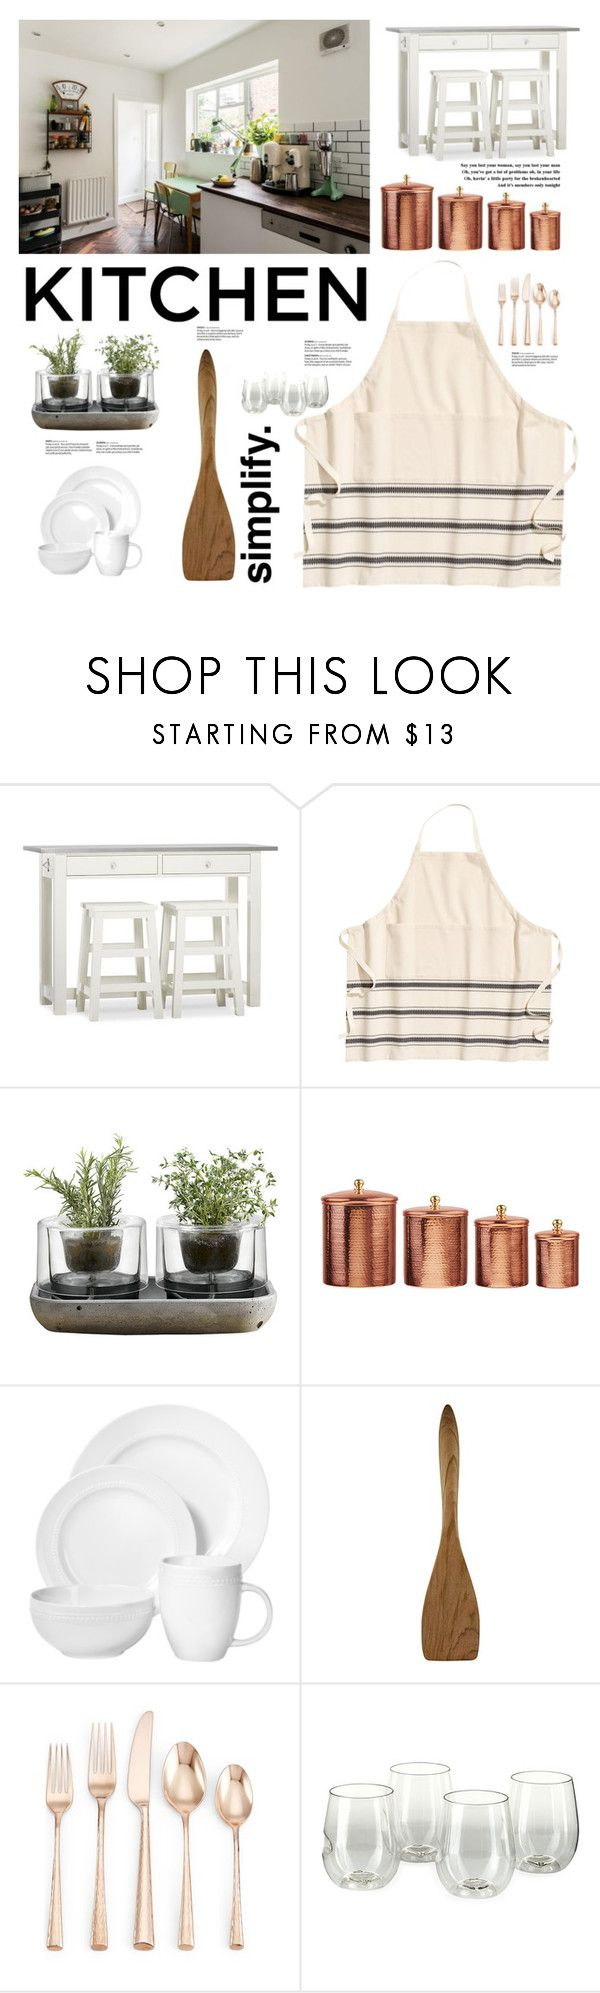 """Dream Kitchen. Simplify."" by elisabetta-negro ❤ liked on Polyvore featuring interior, interiors, interior design, home, home decor, interior decorating, Pottery Barn, Nude, Amici Home and Bérard"